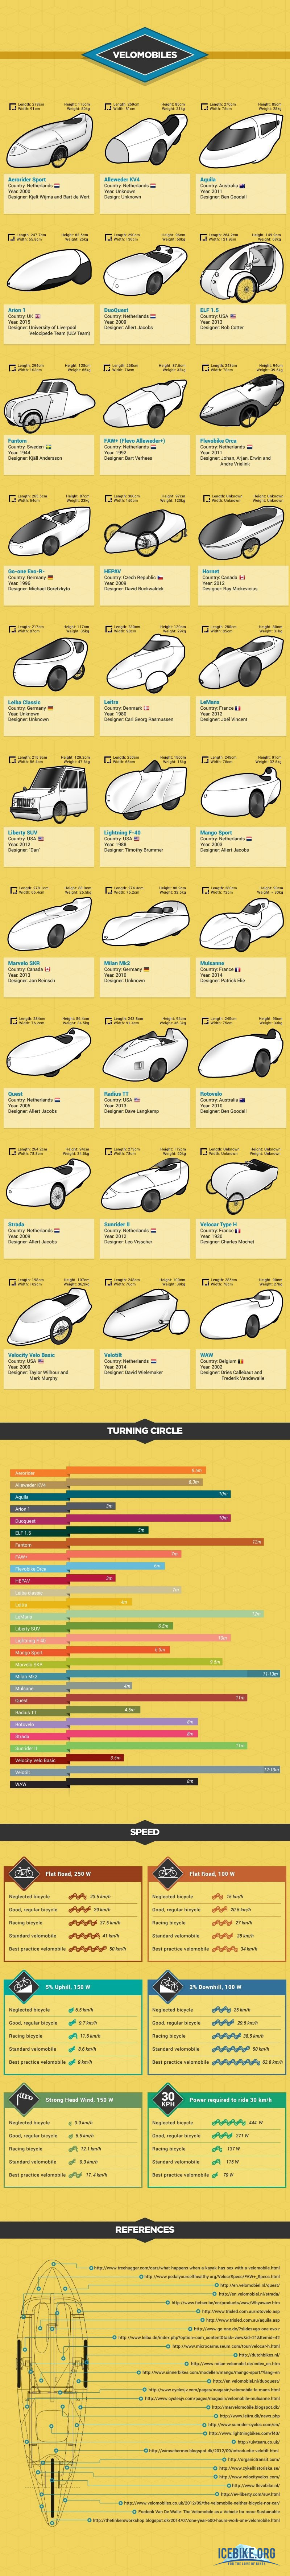 30 iconic velomobile designs